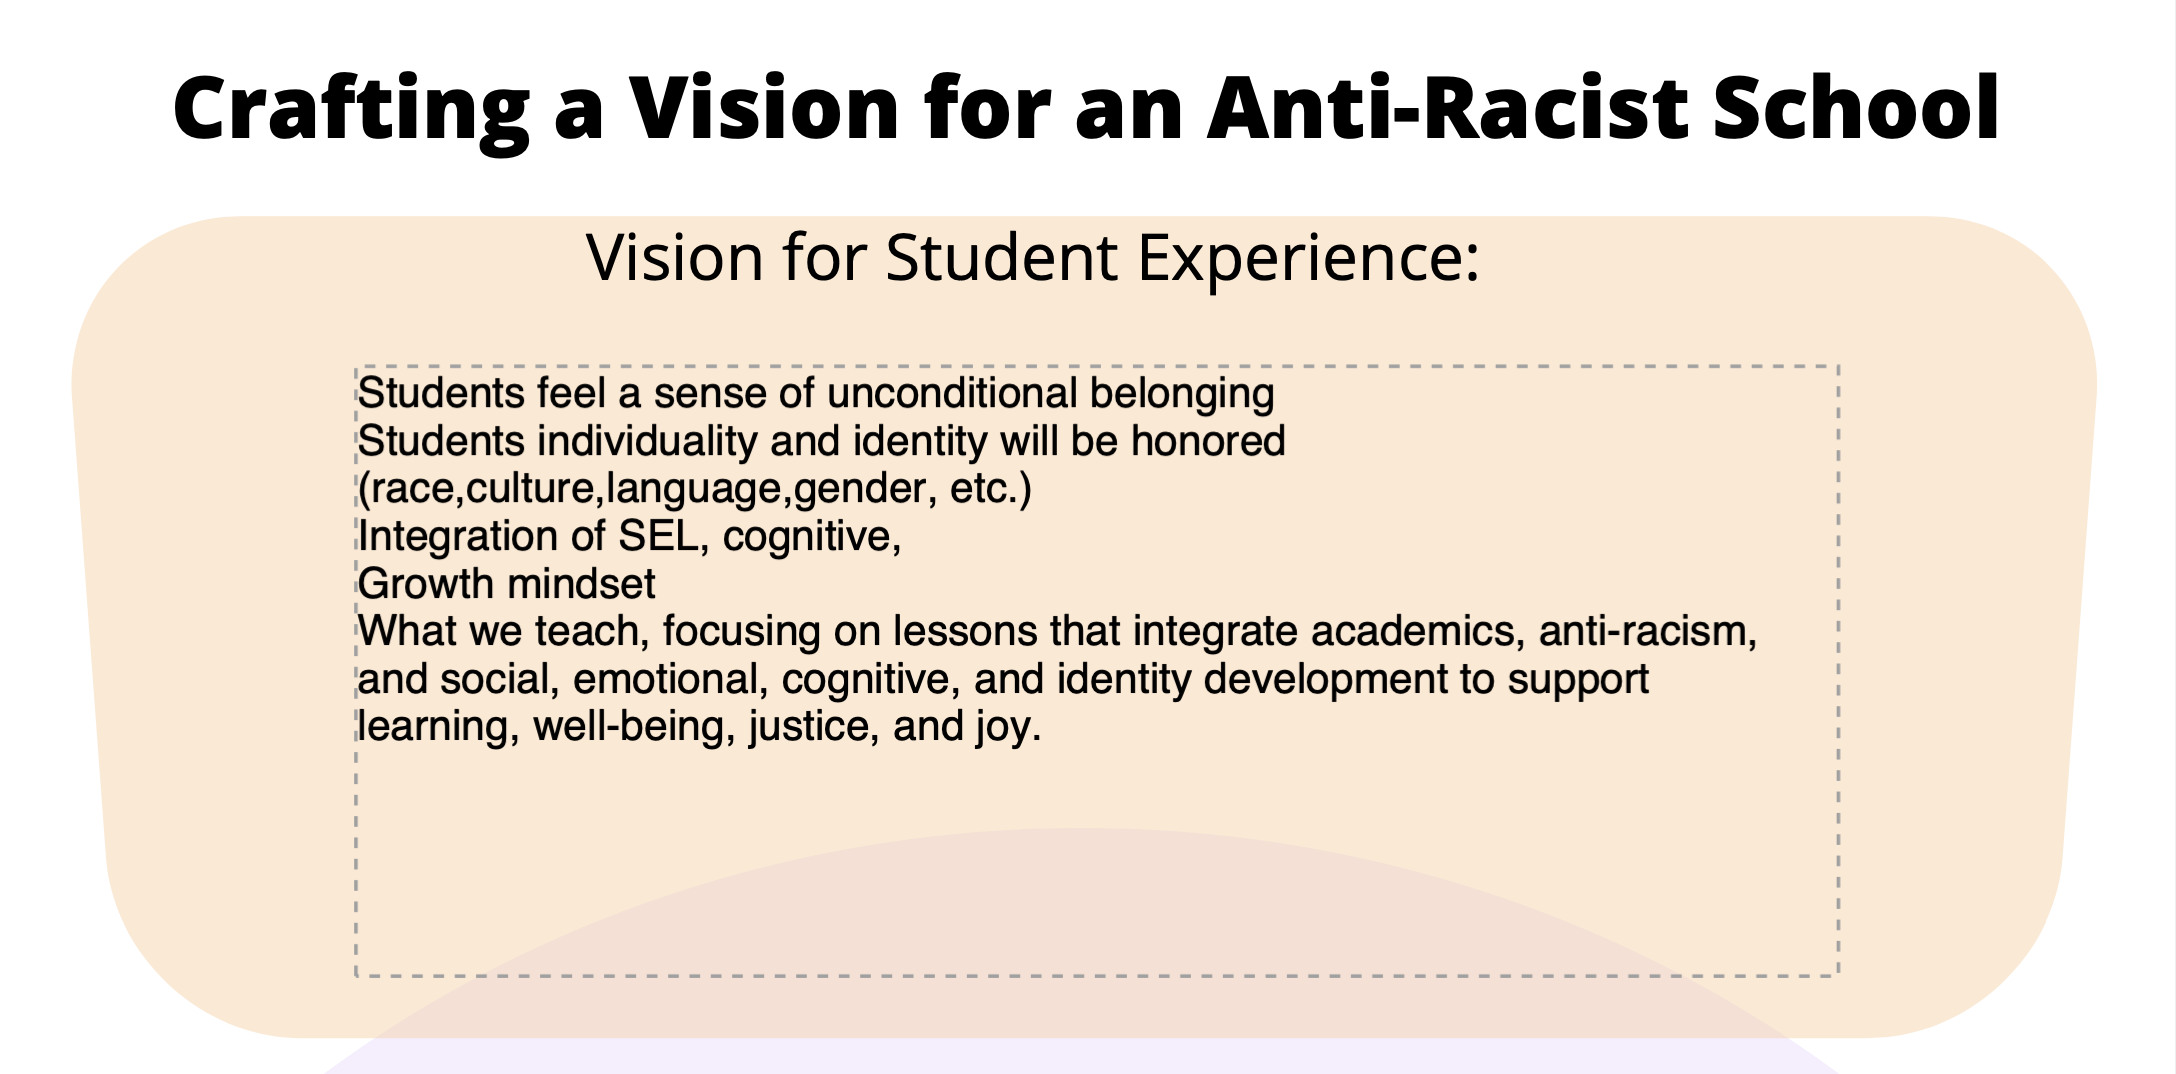 Vision of an anti-racist student school